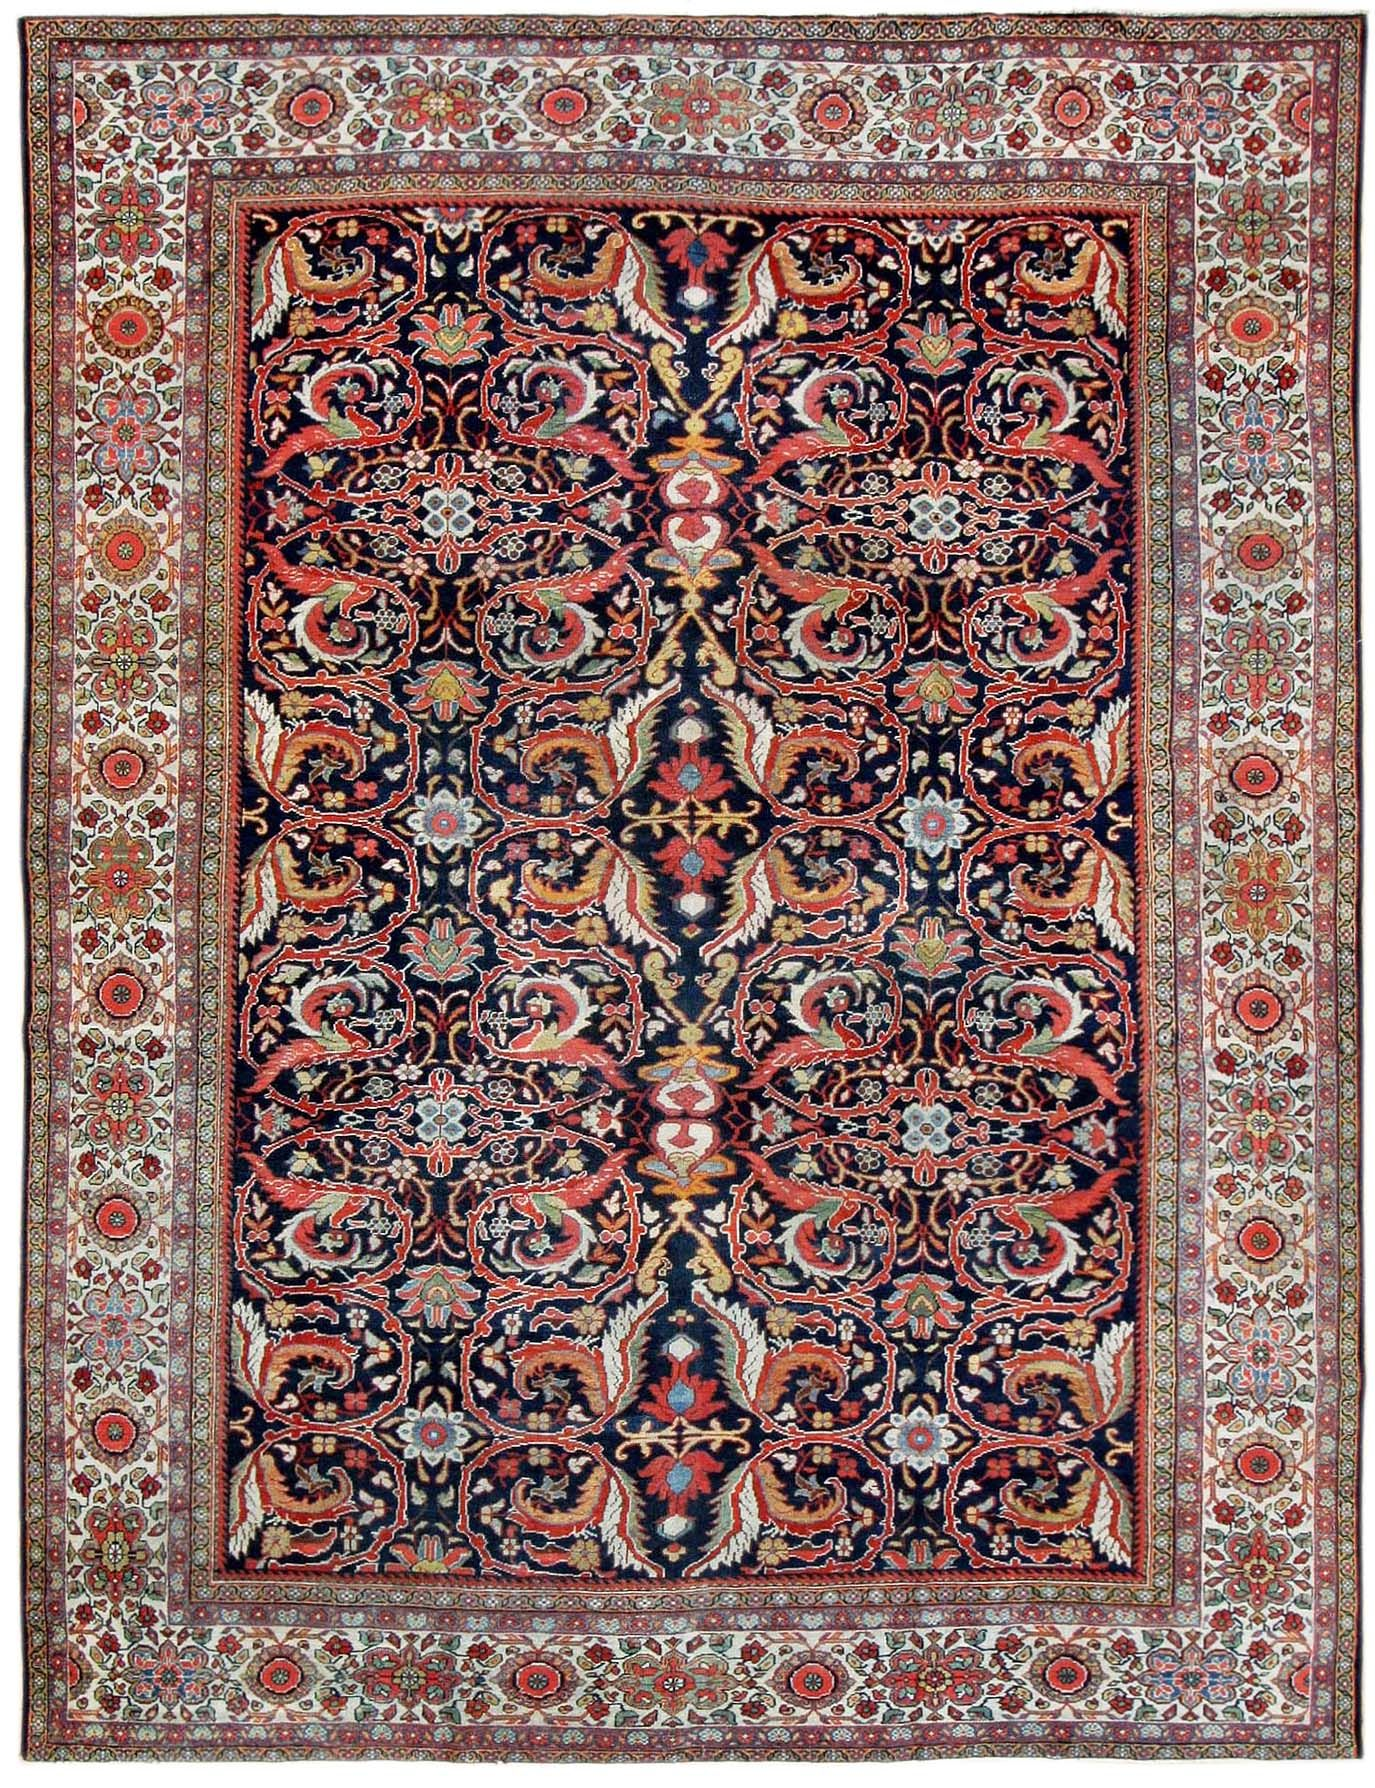 Antique Sultanabad Persian Rugs 1867 Detail Large View By